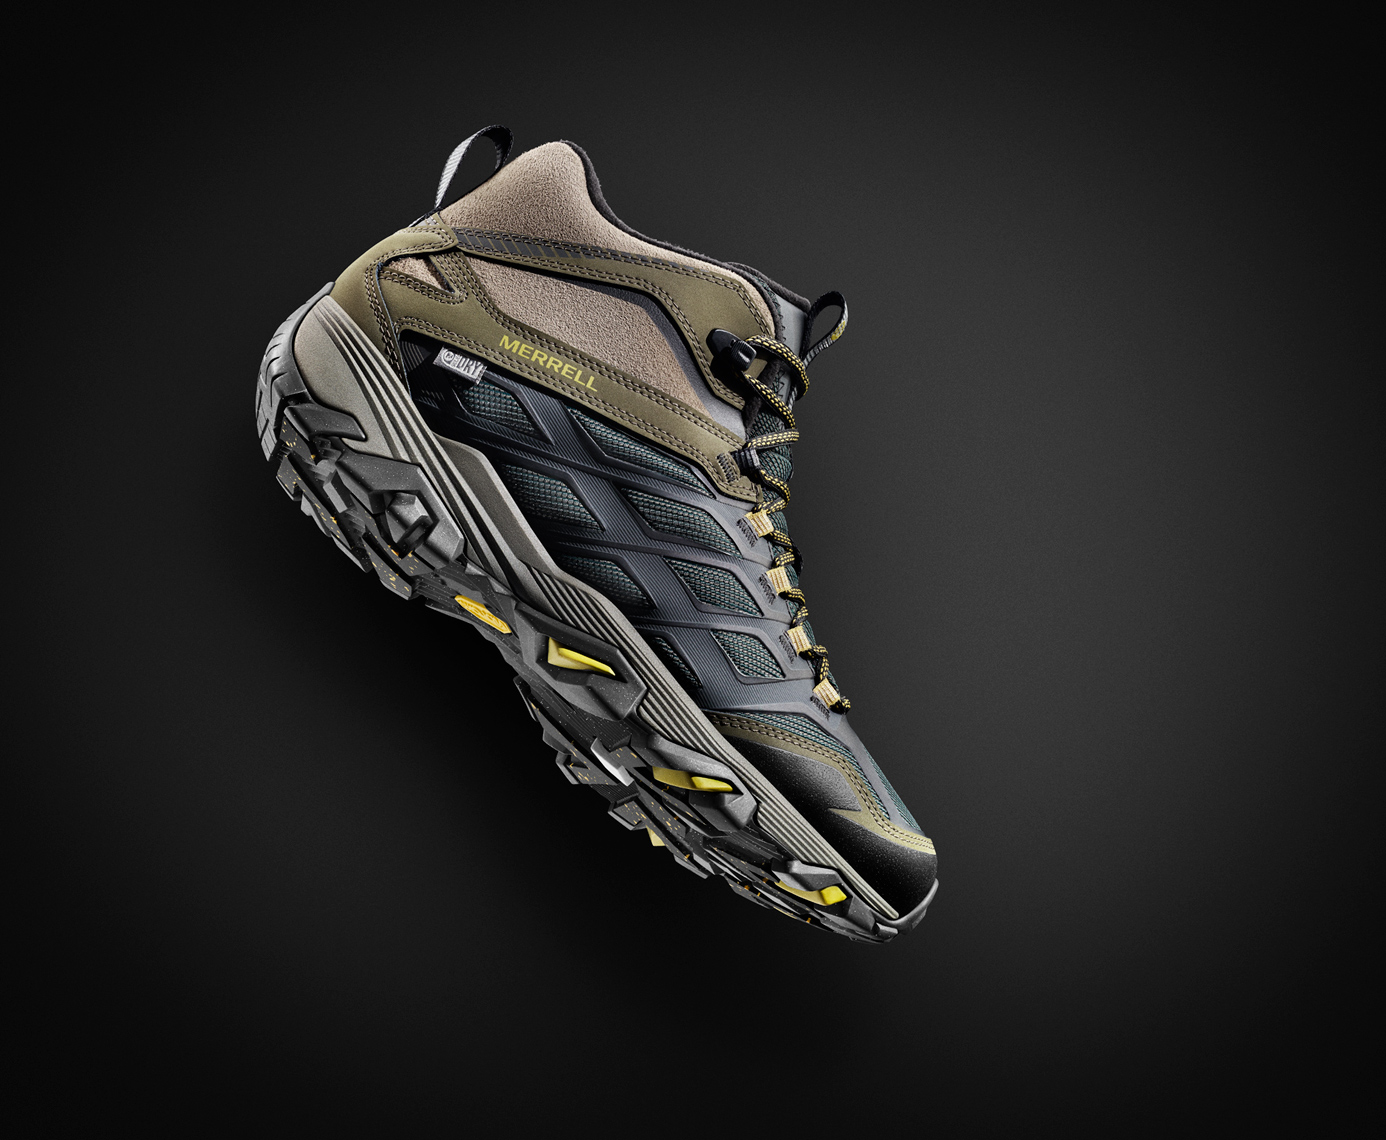 Merrell Footwear Image Retouching and Environment Creation